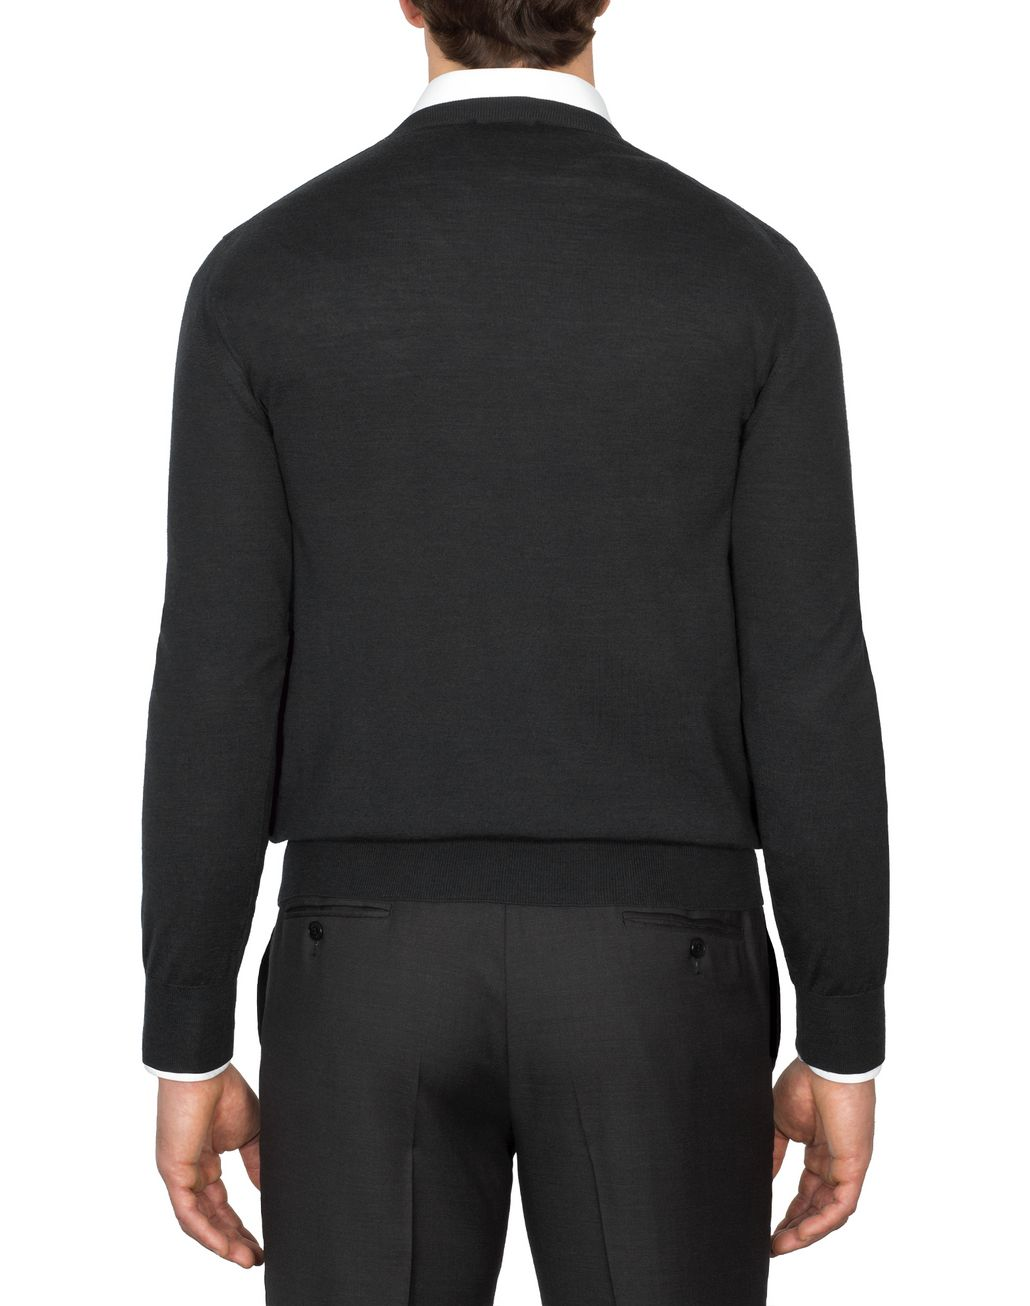 BRIONI 'Essential' Grey Crew-Neck Sweater Knitwear [*** pickupInStoreShippingNotGuaranteed_info ***] d